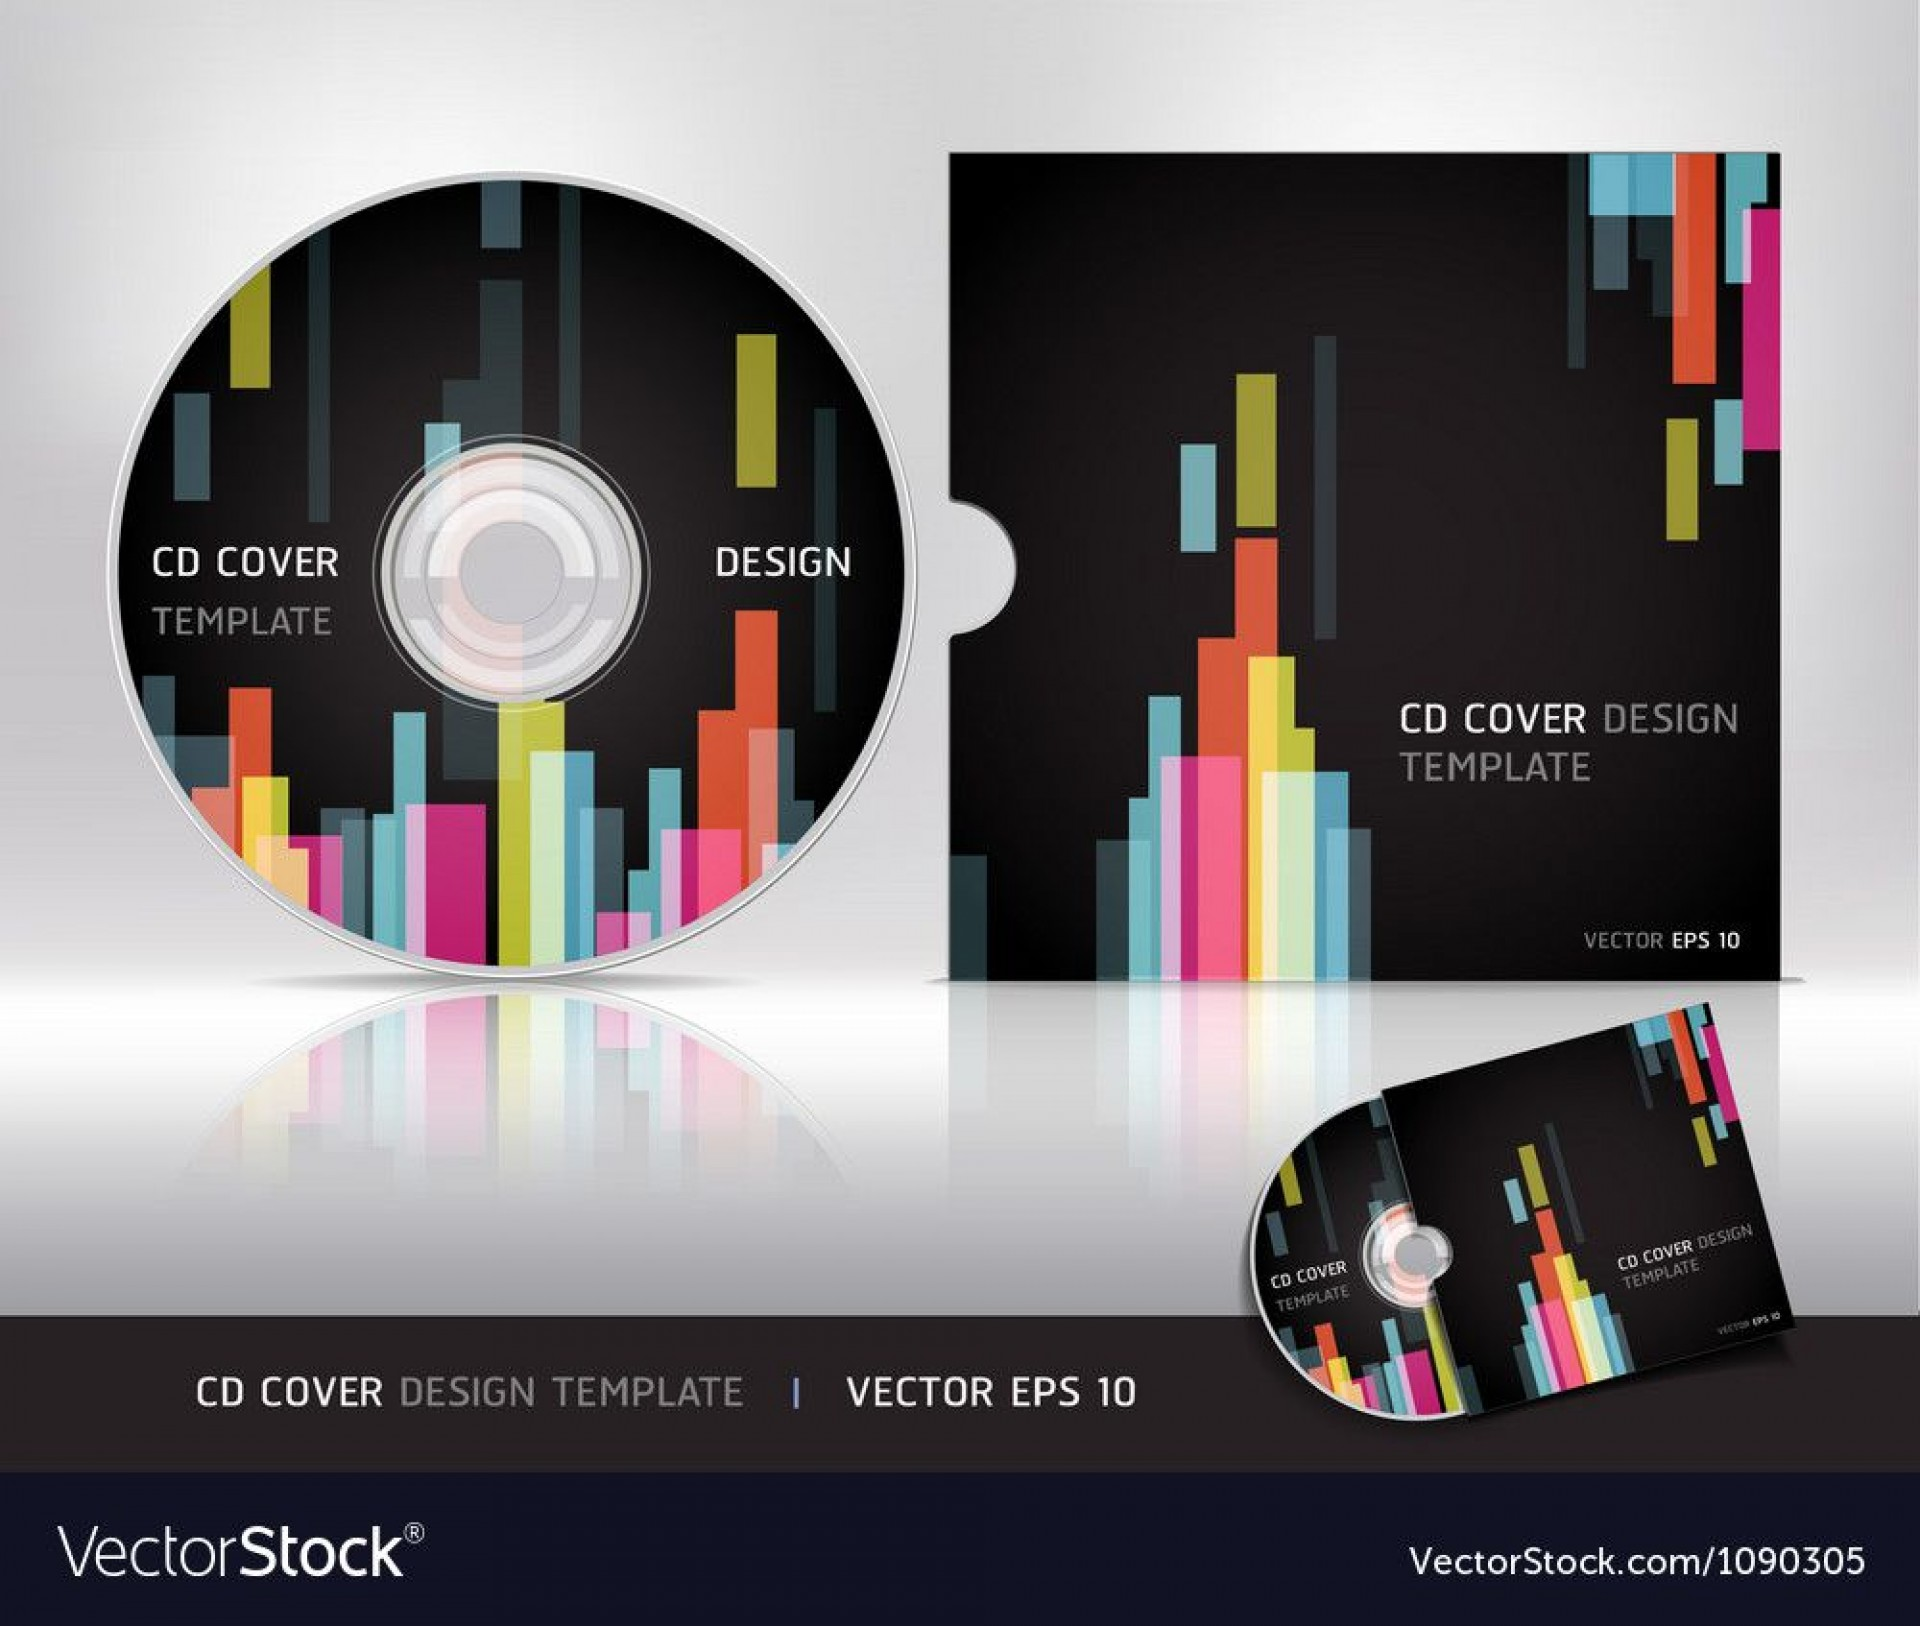 004 Stupendou Cd Design Template Free Example  Cover Download Word Label Wedding1920